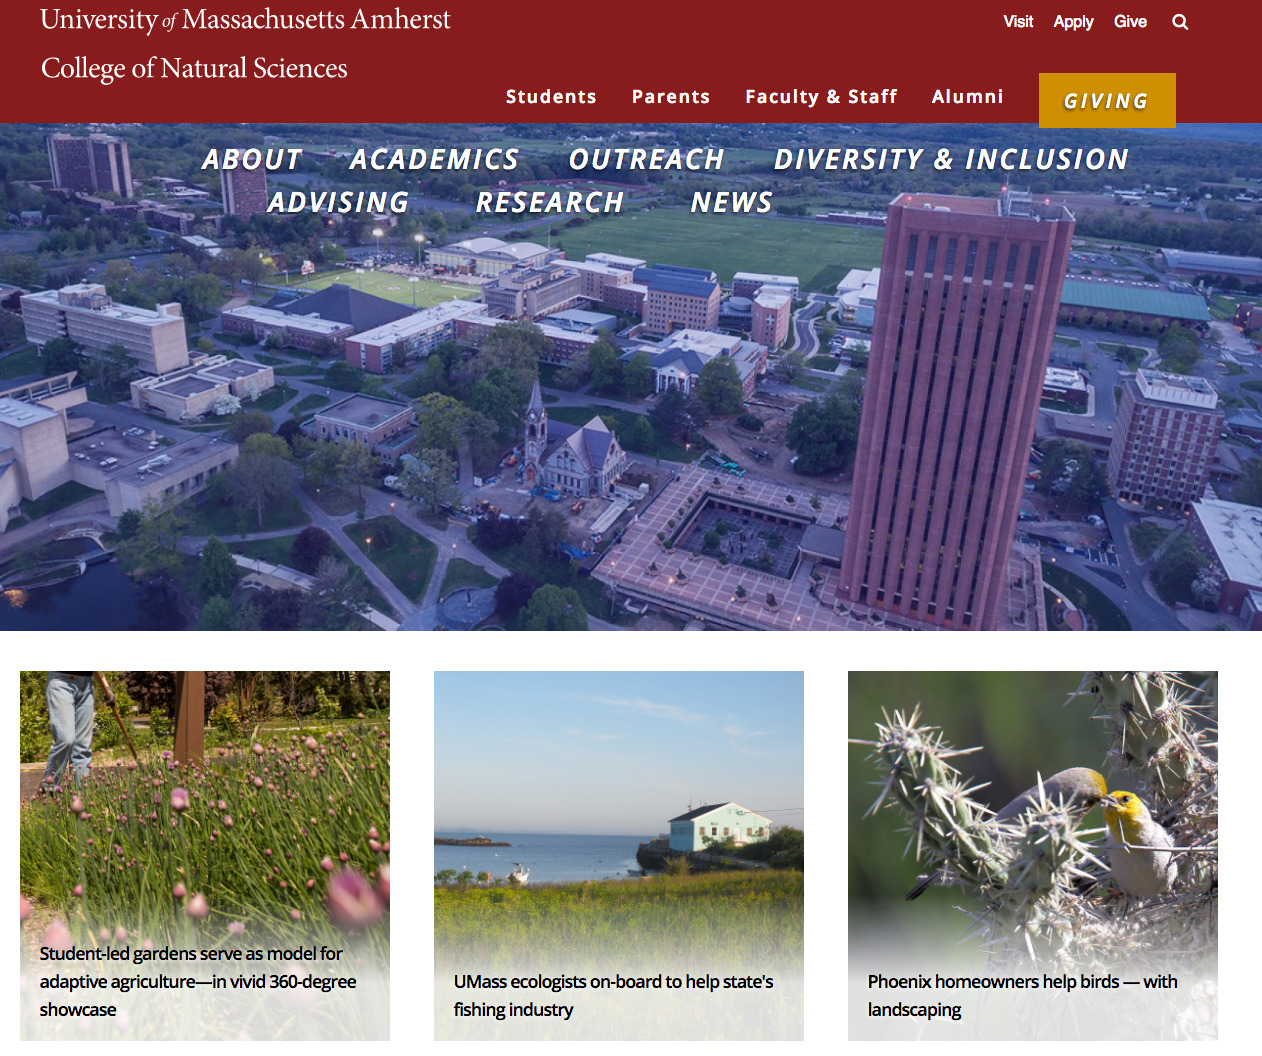 Screenshot_2019-04-02 The College of Natural Sciences (CNS) at UMass Amherst.jpg